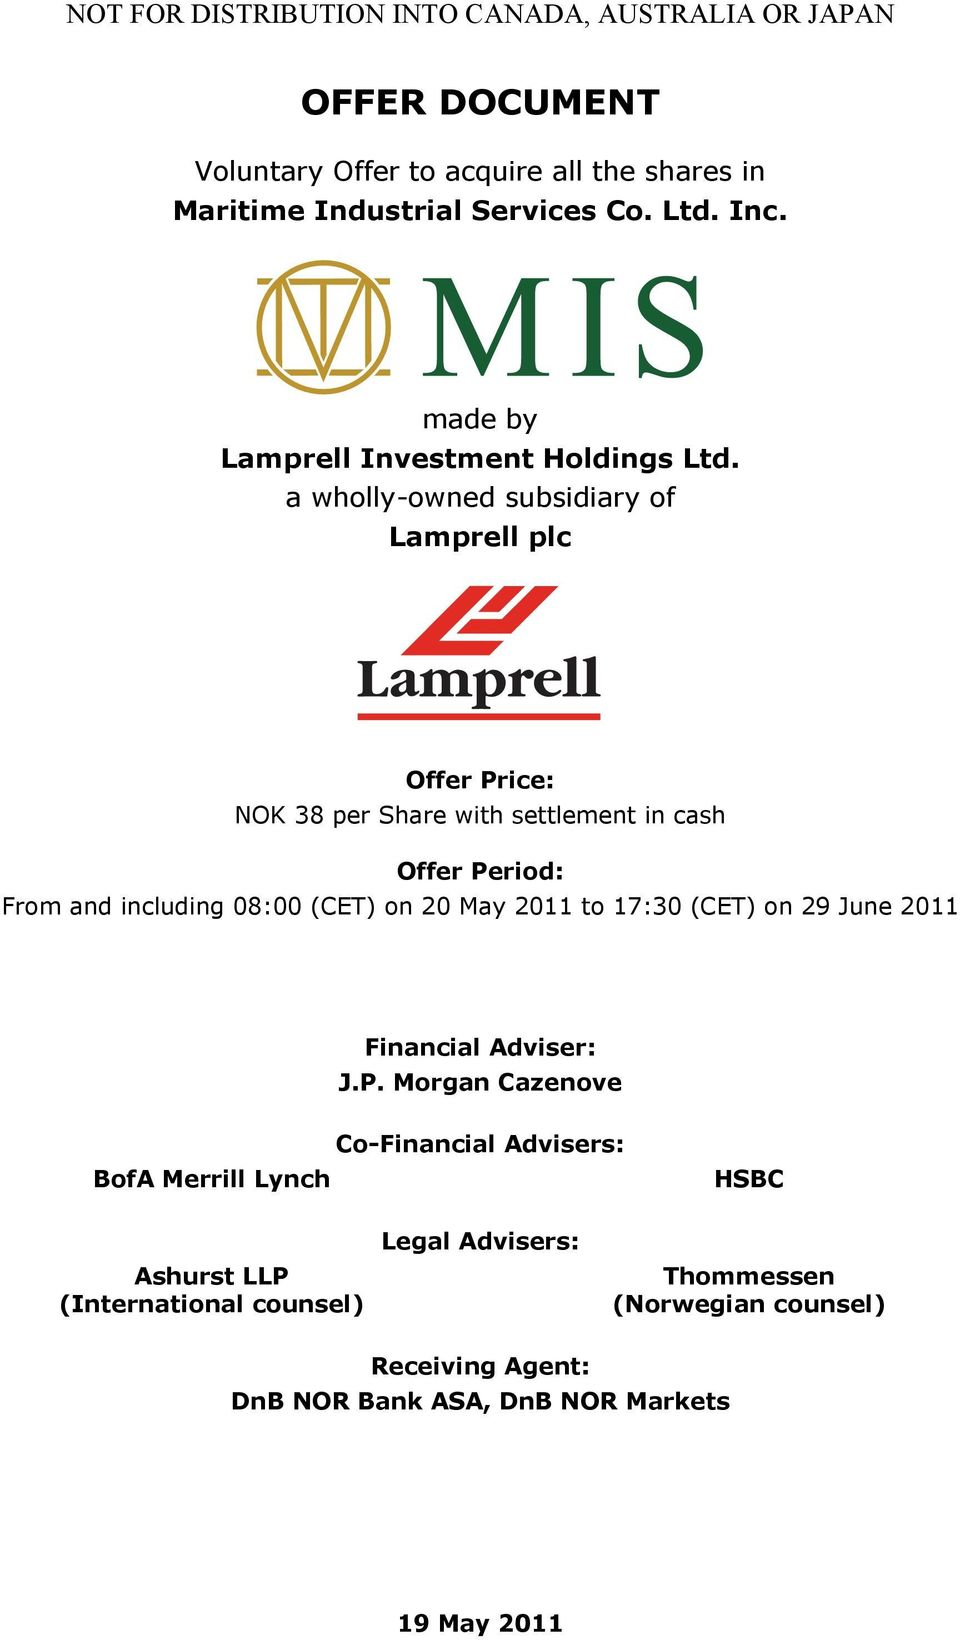 a wholly-owned subsidiary of Lamprell plc Offer Price: NOK 38 per Share with settlement in cash Offer Period: From and including 08:00 (CET) on 20 May